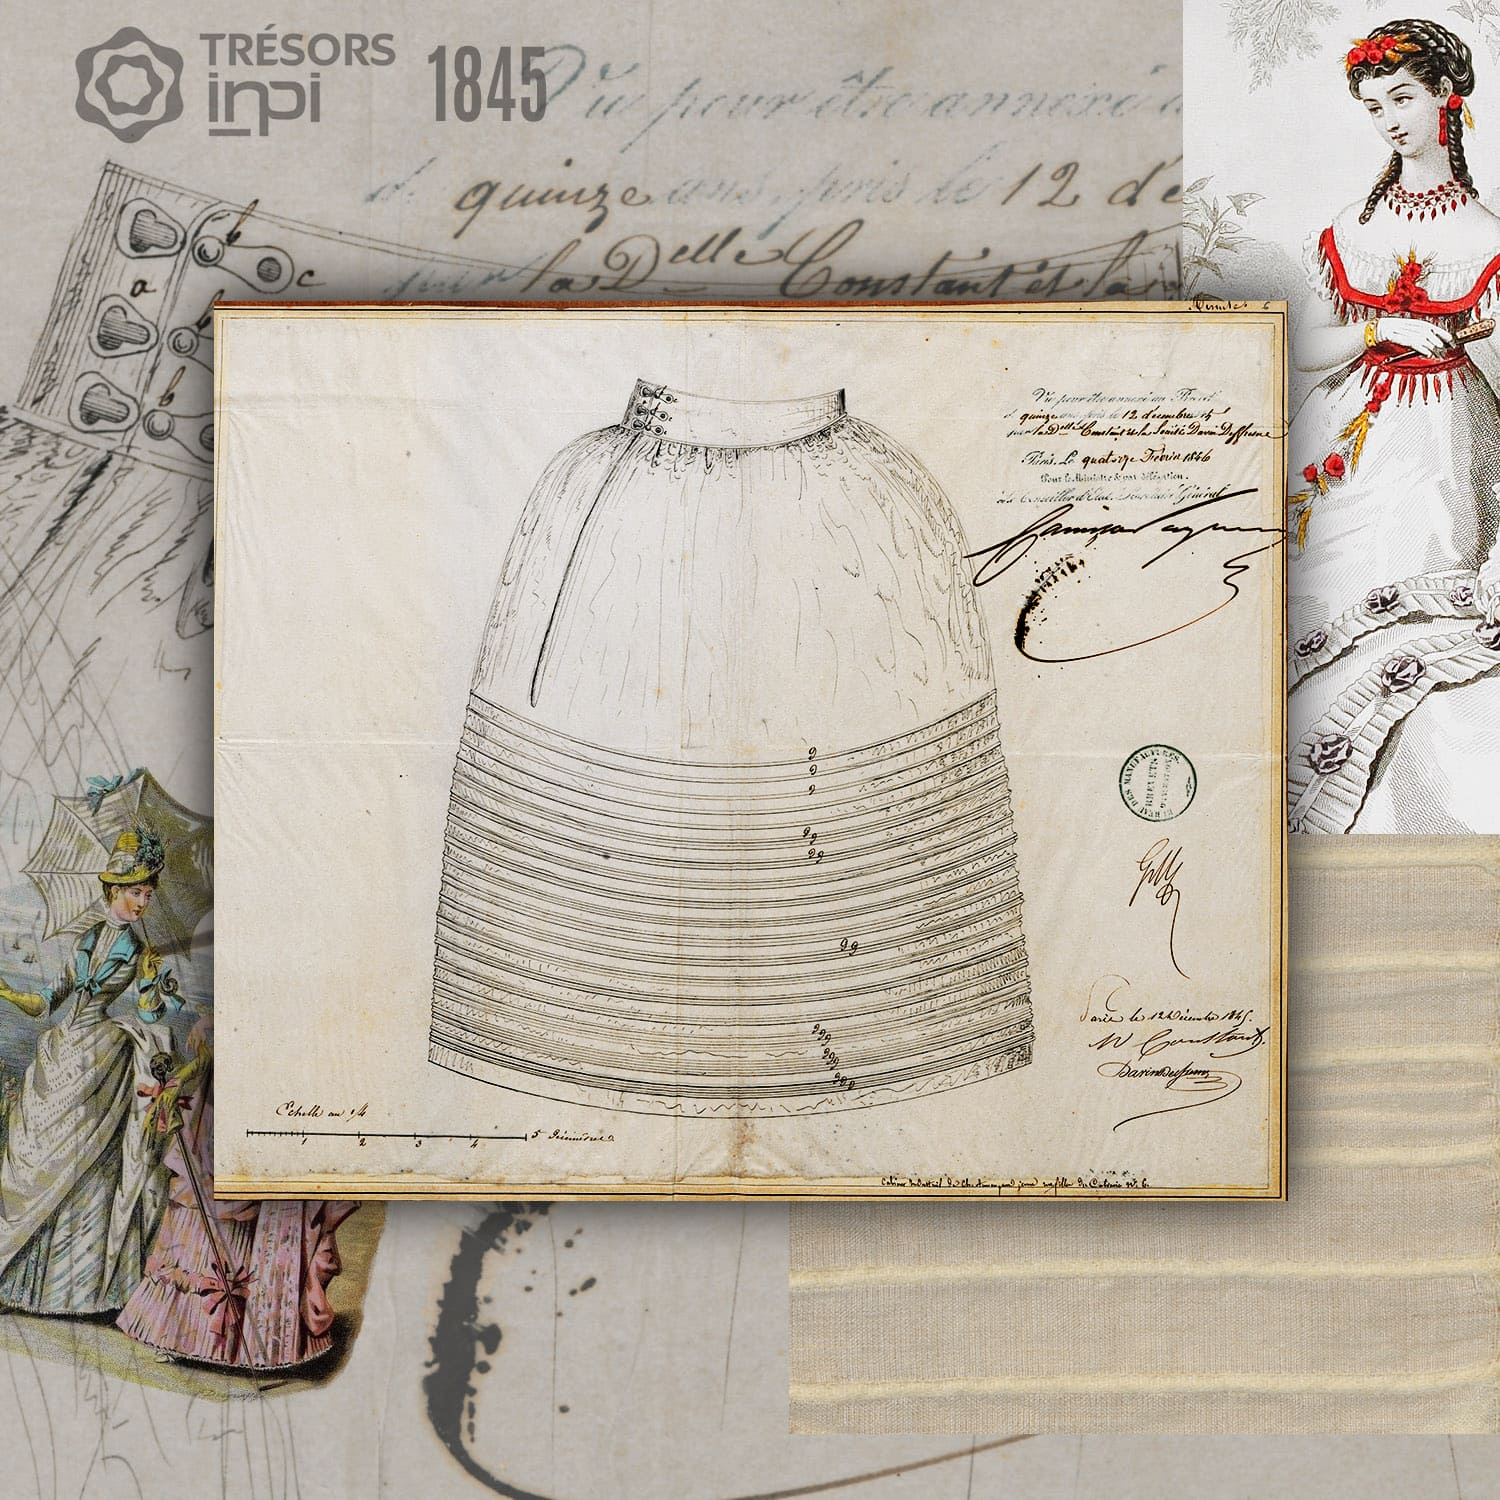 Marguerite Constant, Davin Desfresne 1845 invention - INPI archives